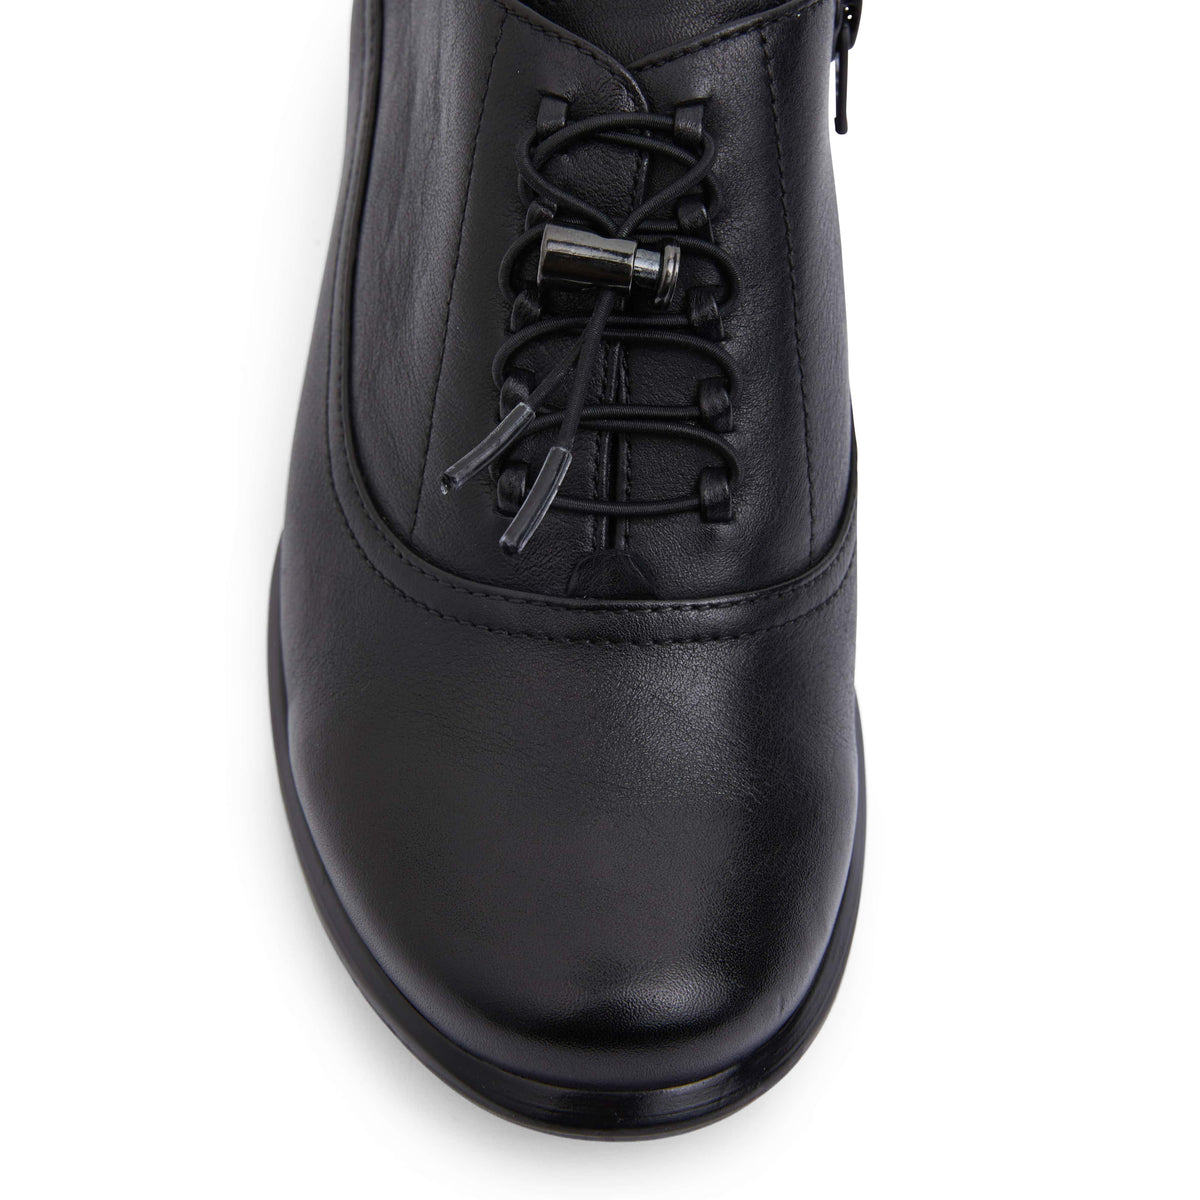 Damian Boot in Black Leather